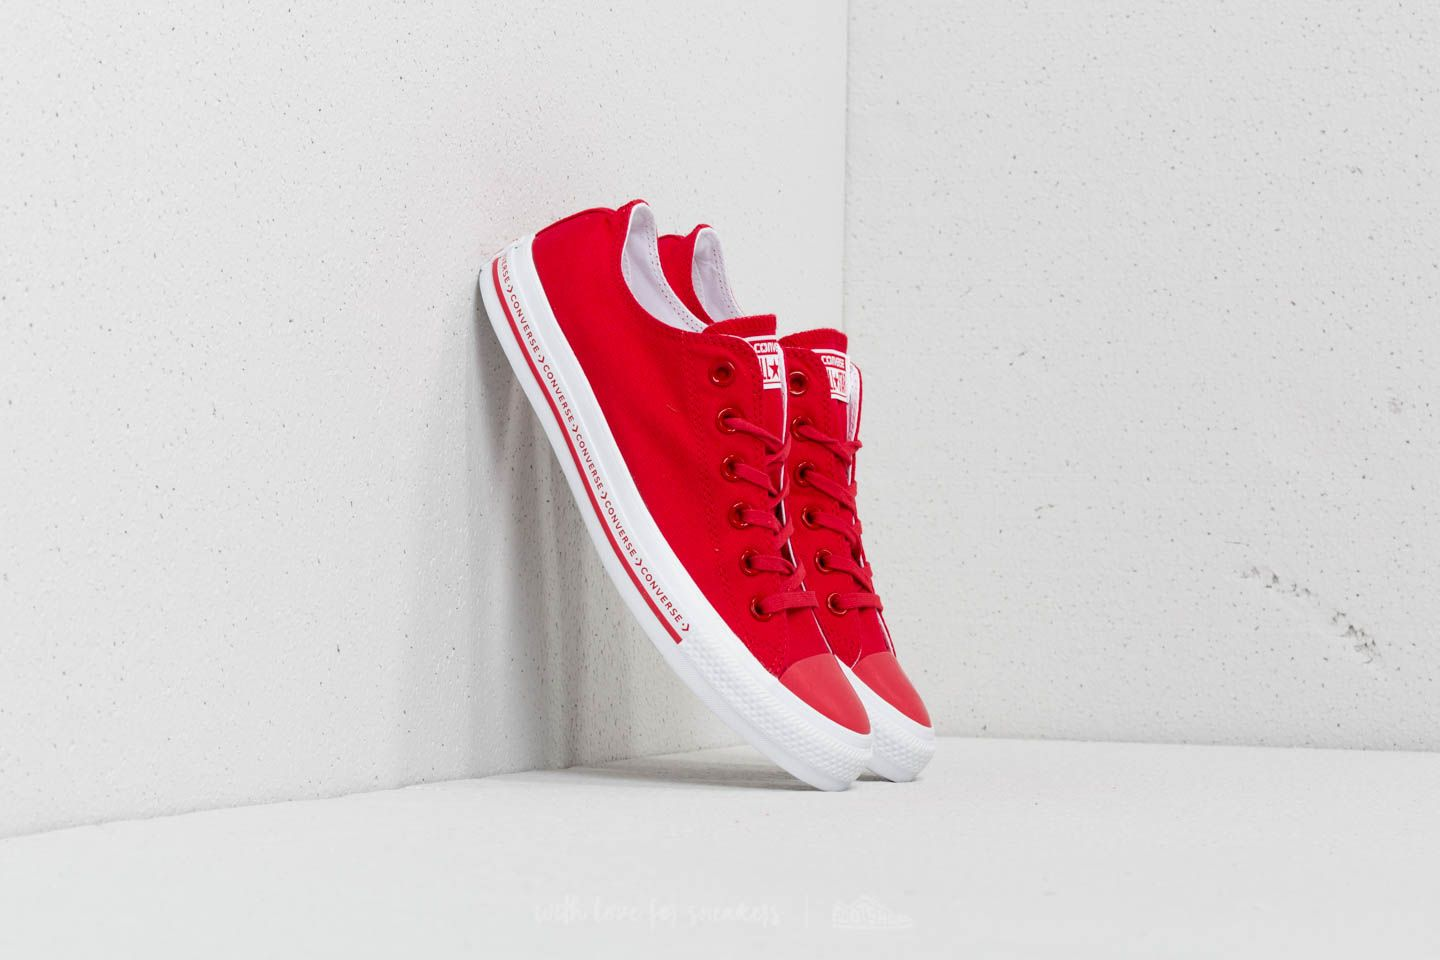 99a75fb9538 Converse Chuck Taylor All Star OX Enamel Red/ Enamel Red/ White ...